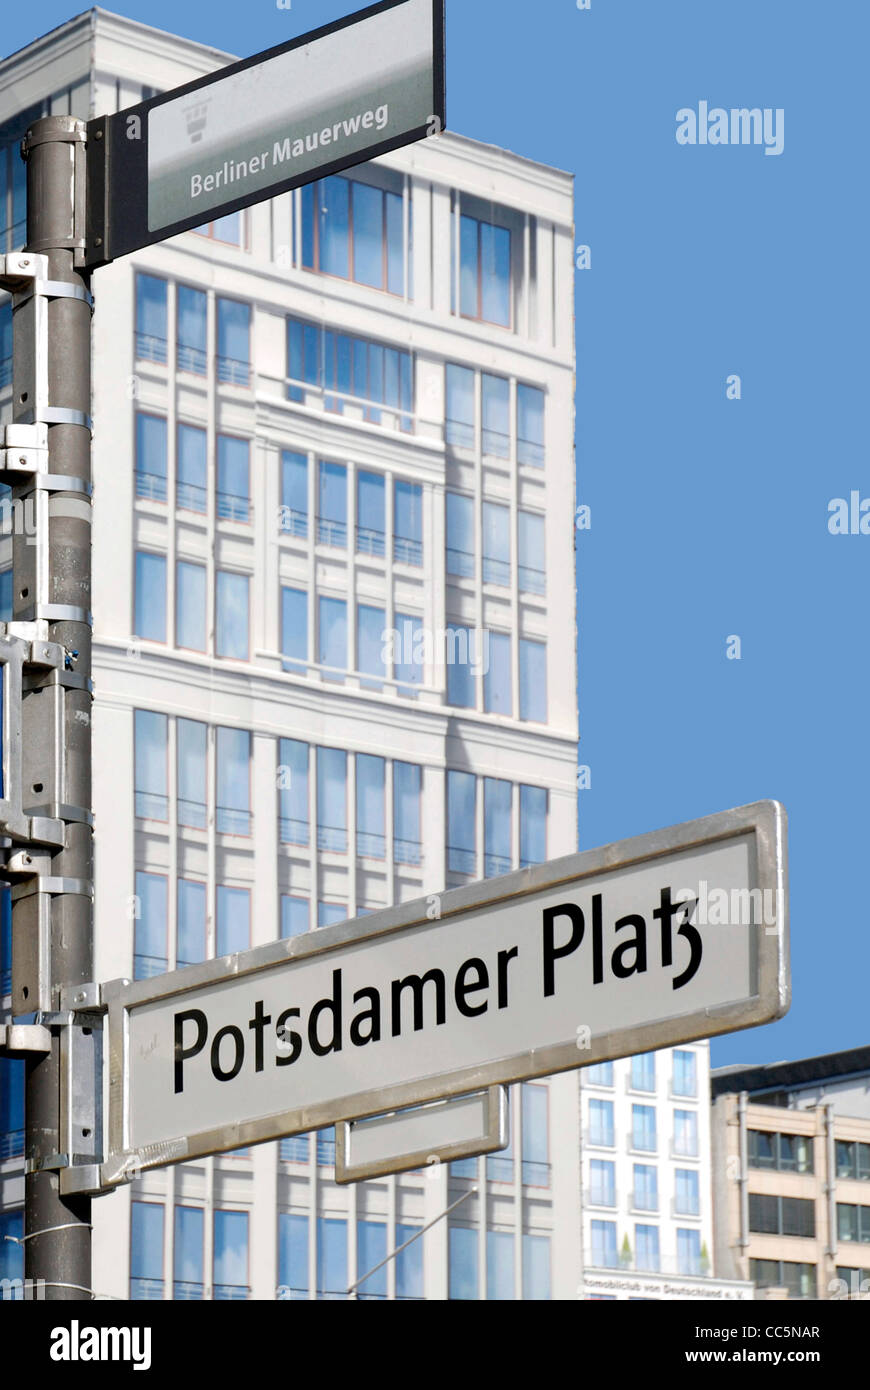 Street sign at the Potsdam place in Berlin. - Stock Image